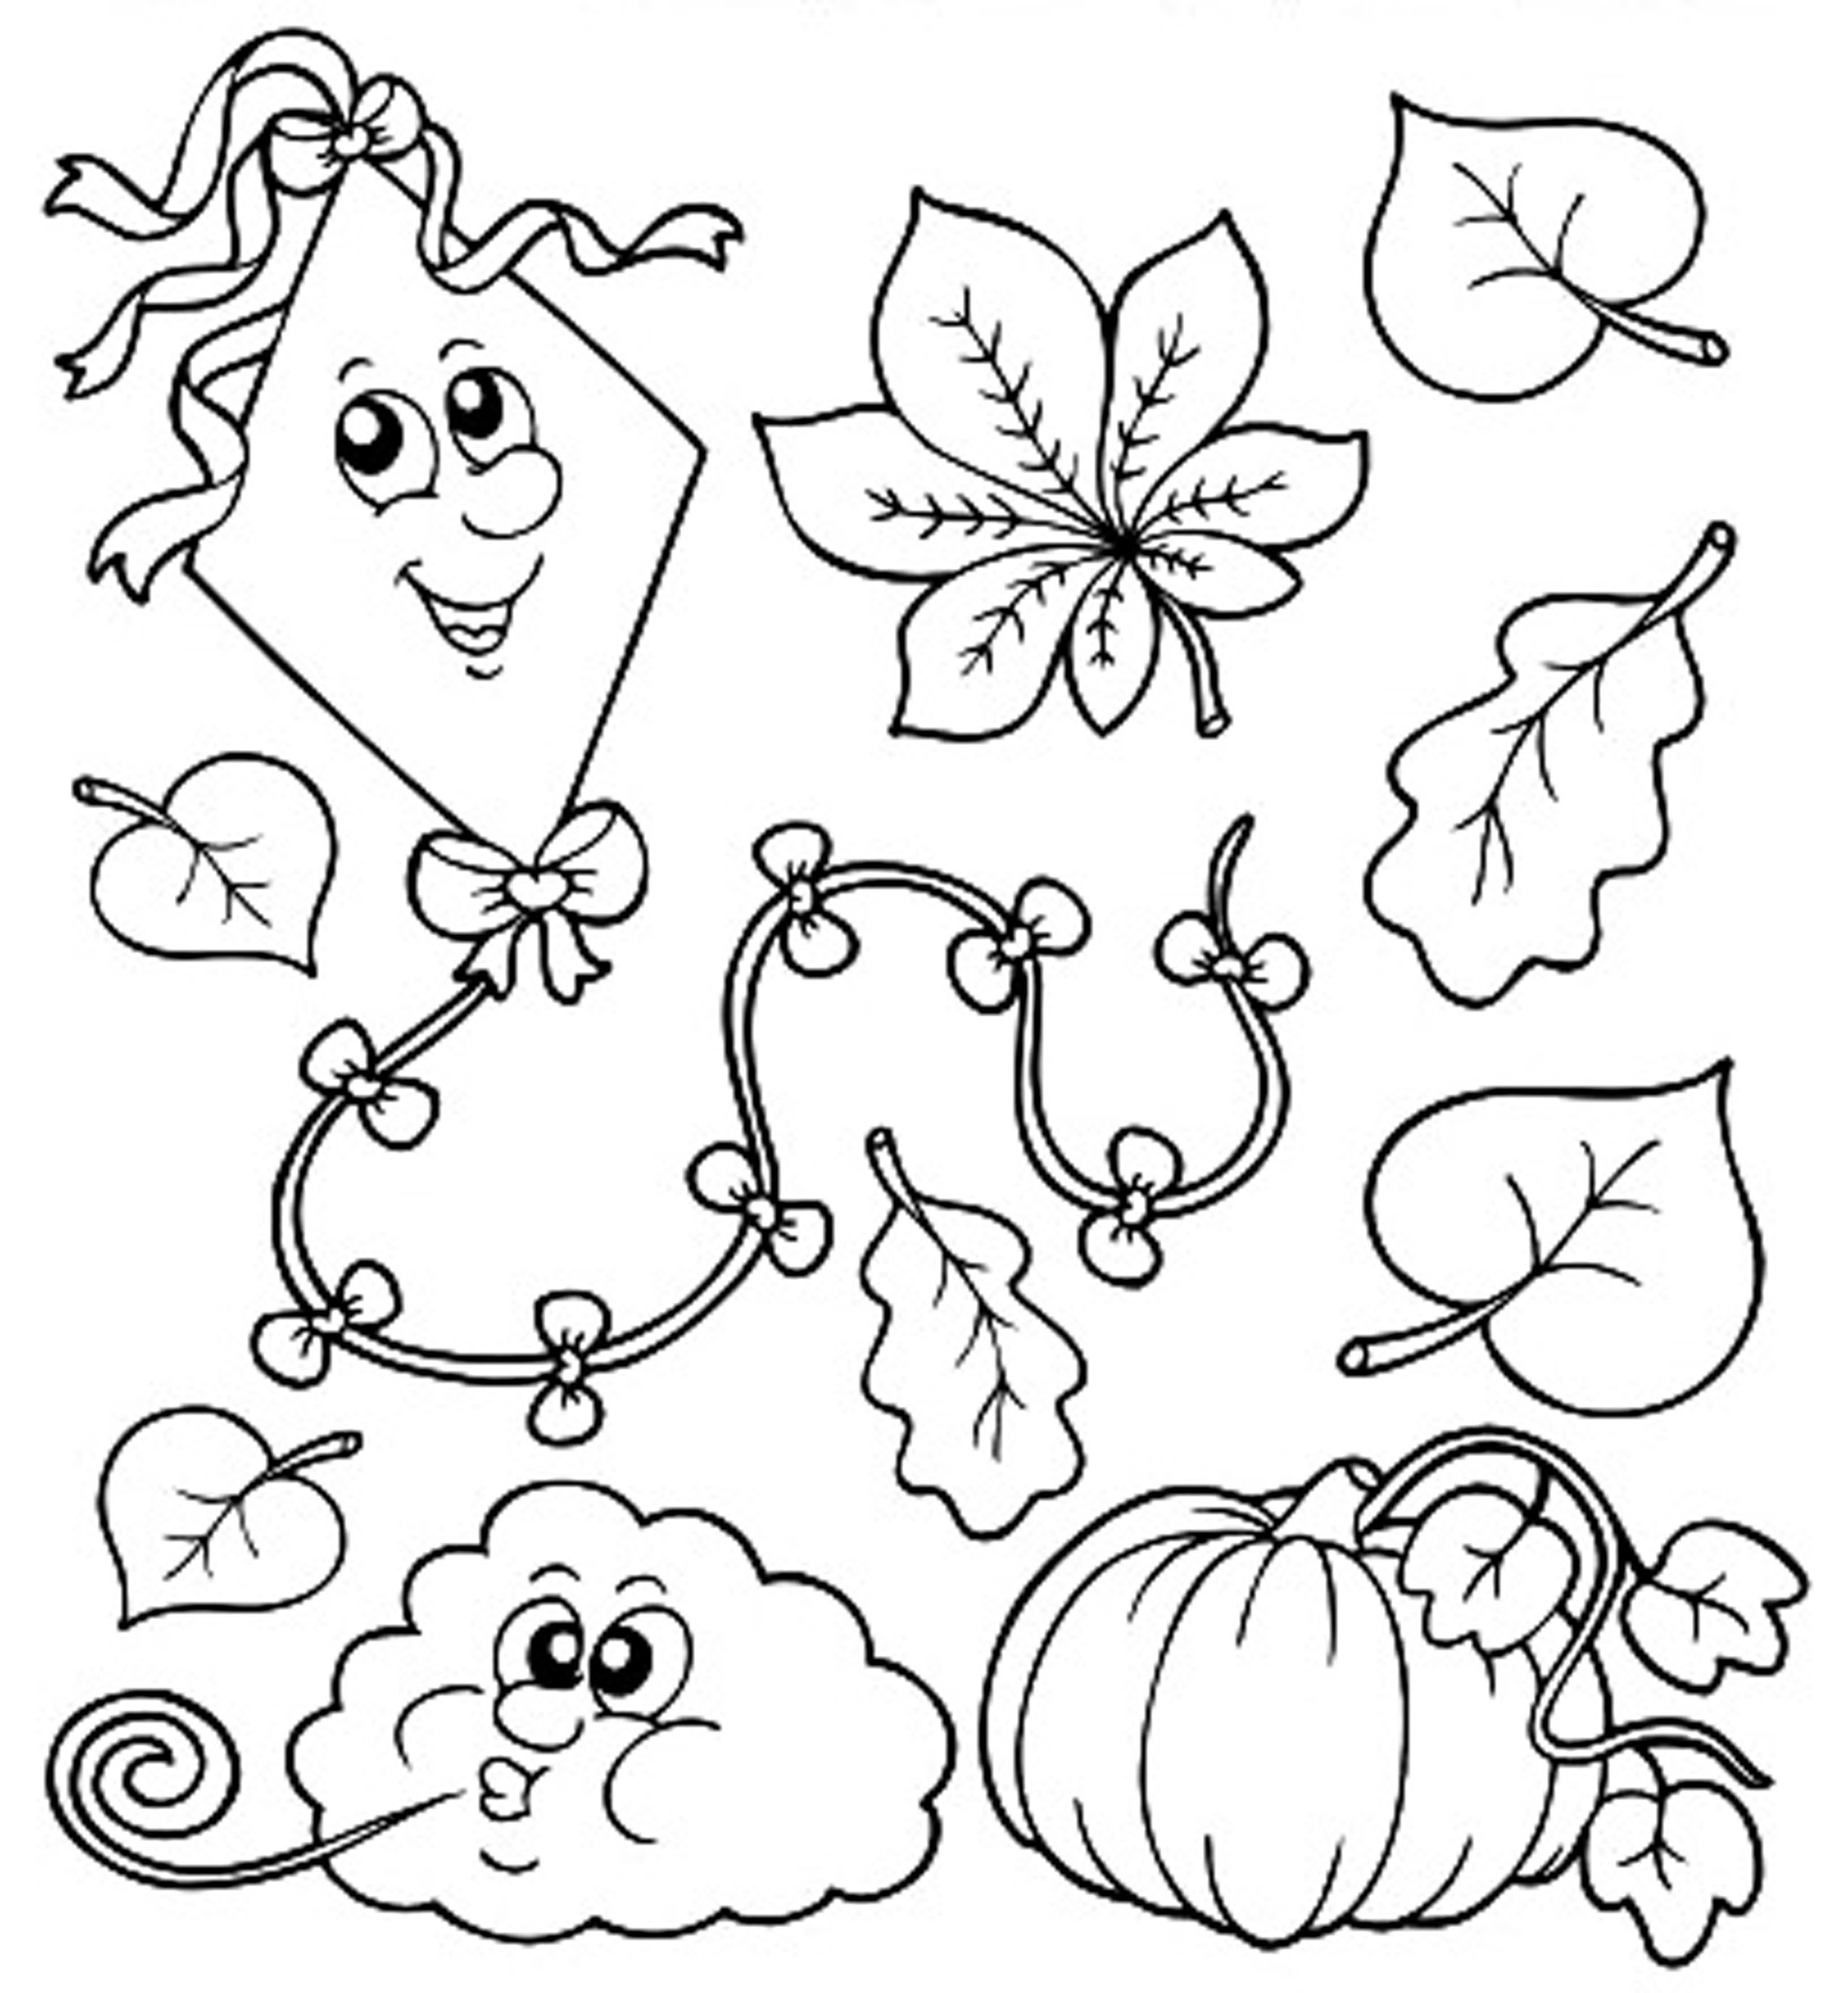 cool weather printable fall toddler coloring pages tone autumn collection